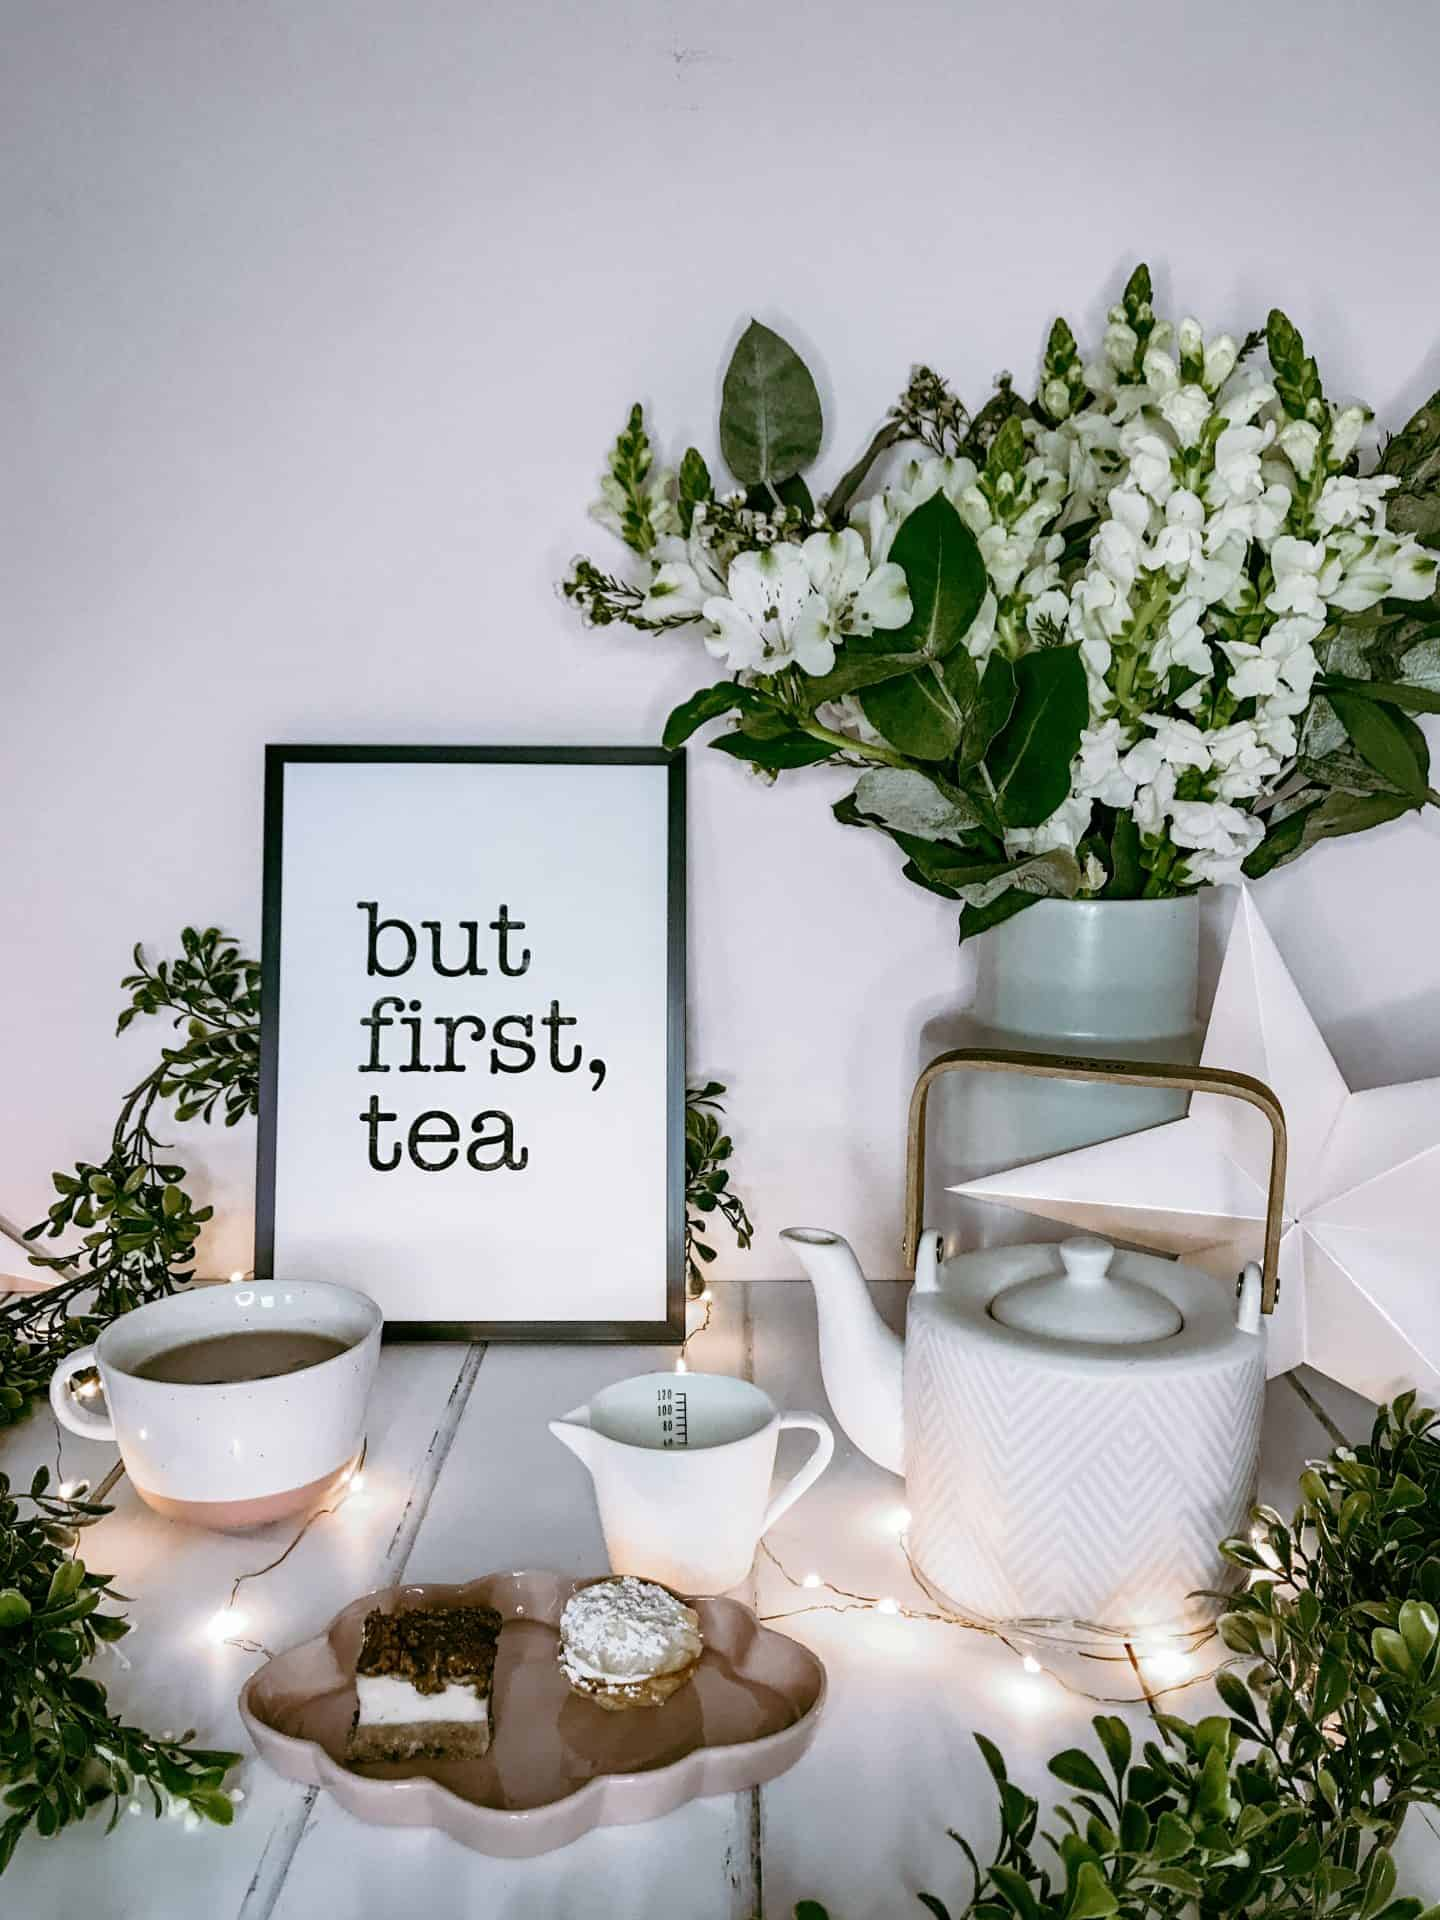 But first, tea monochrome typography print by Latte Design